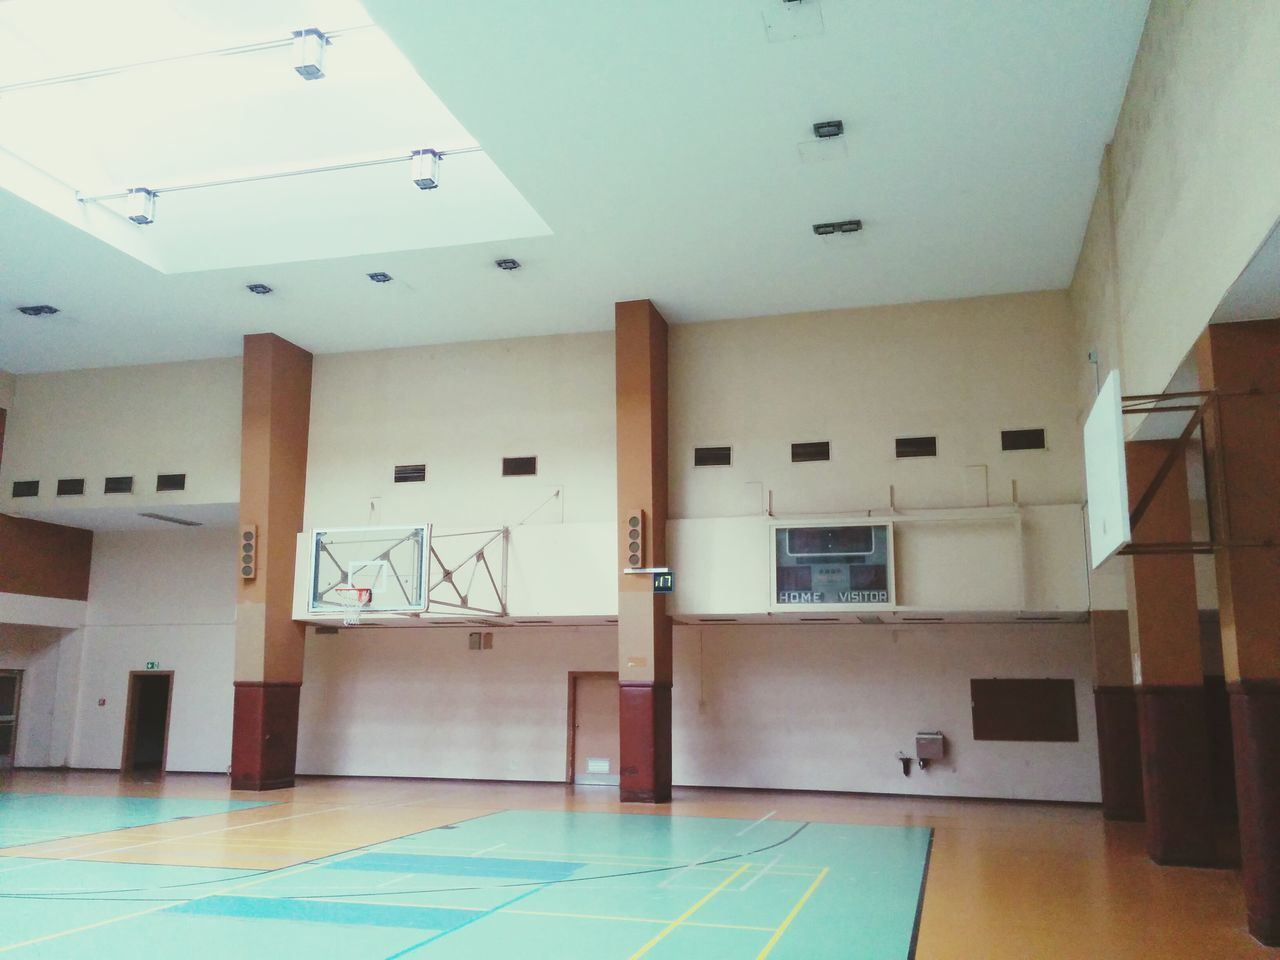 indoors, architecture, no people, day